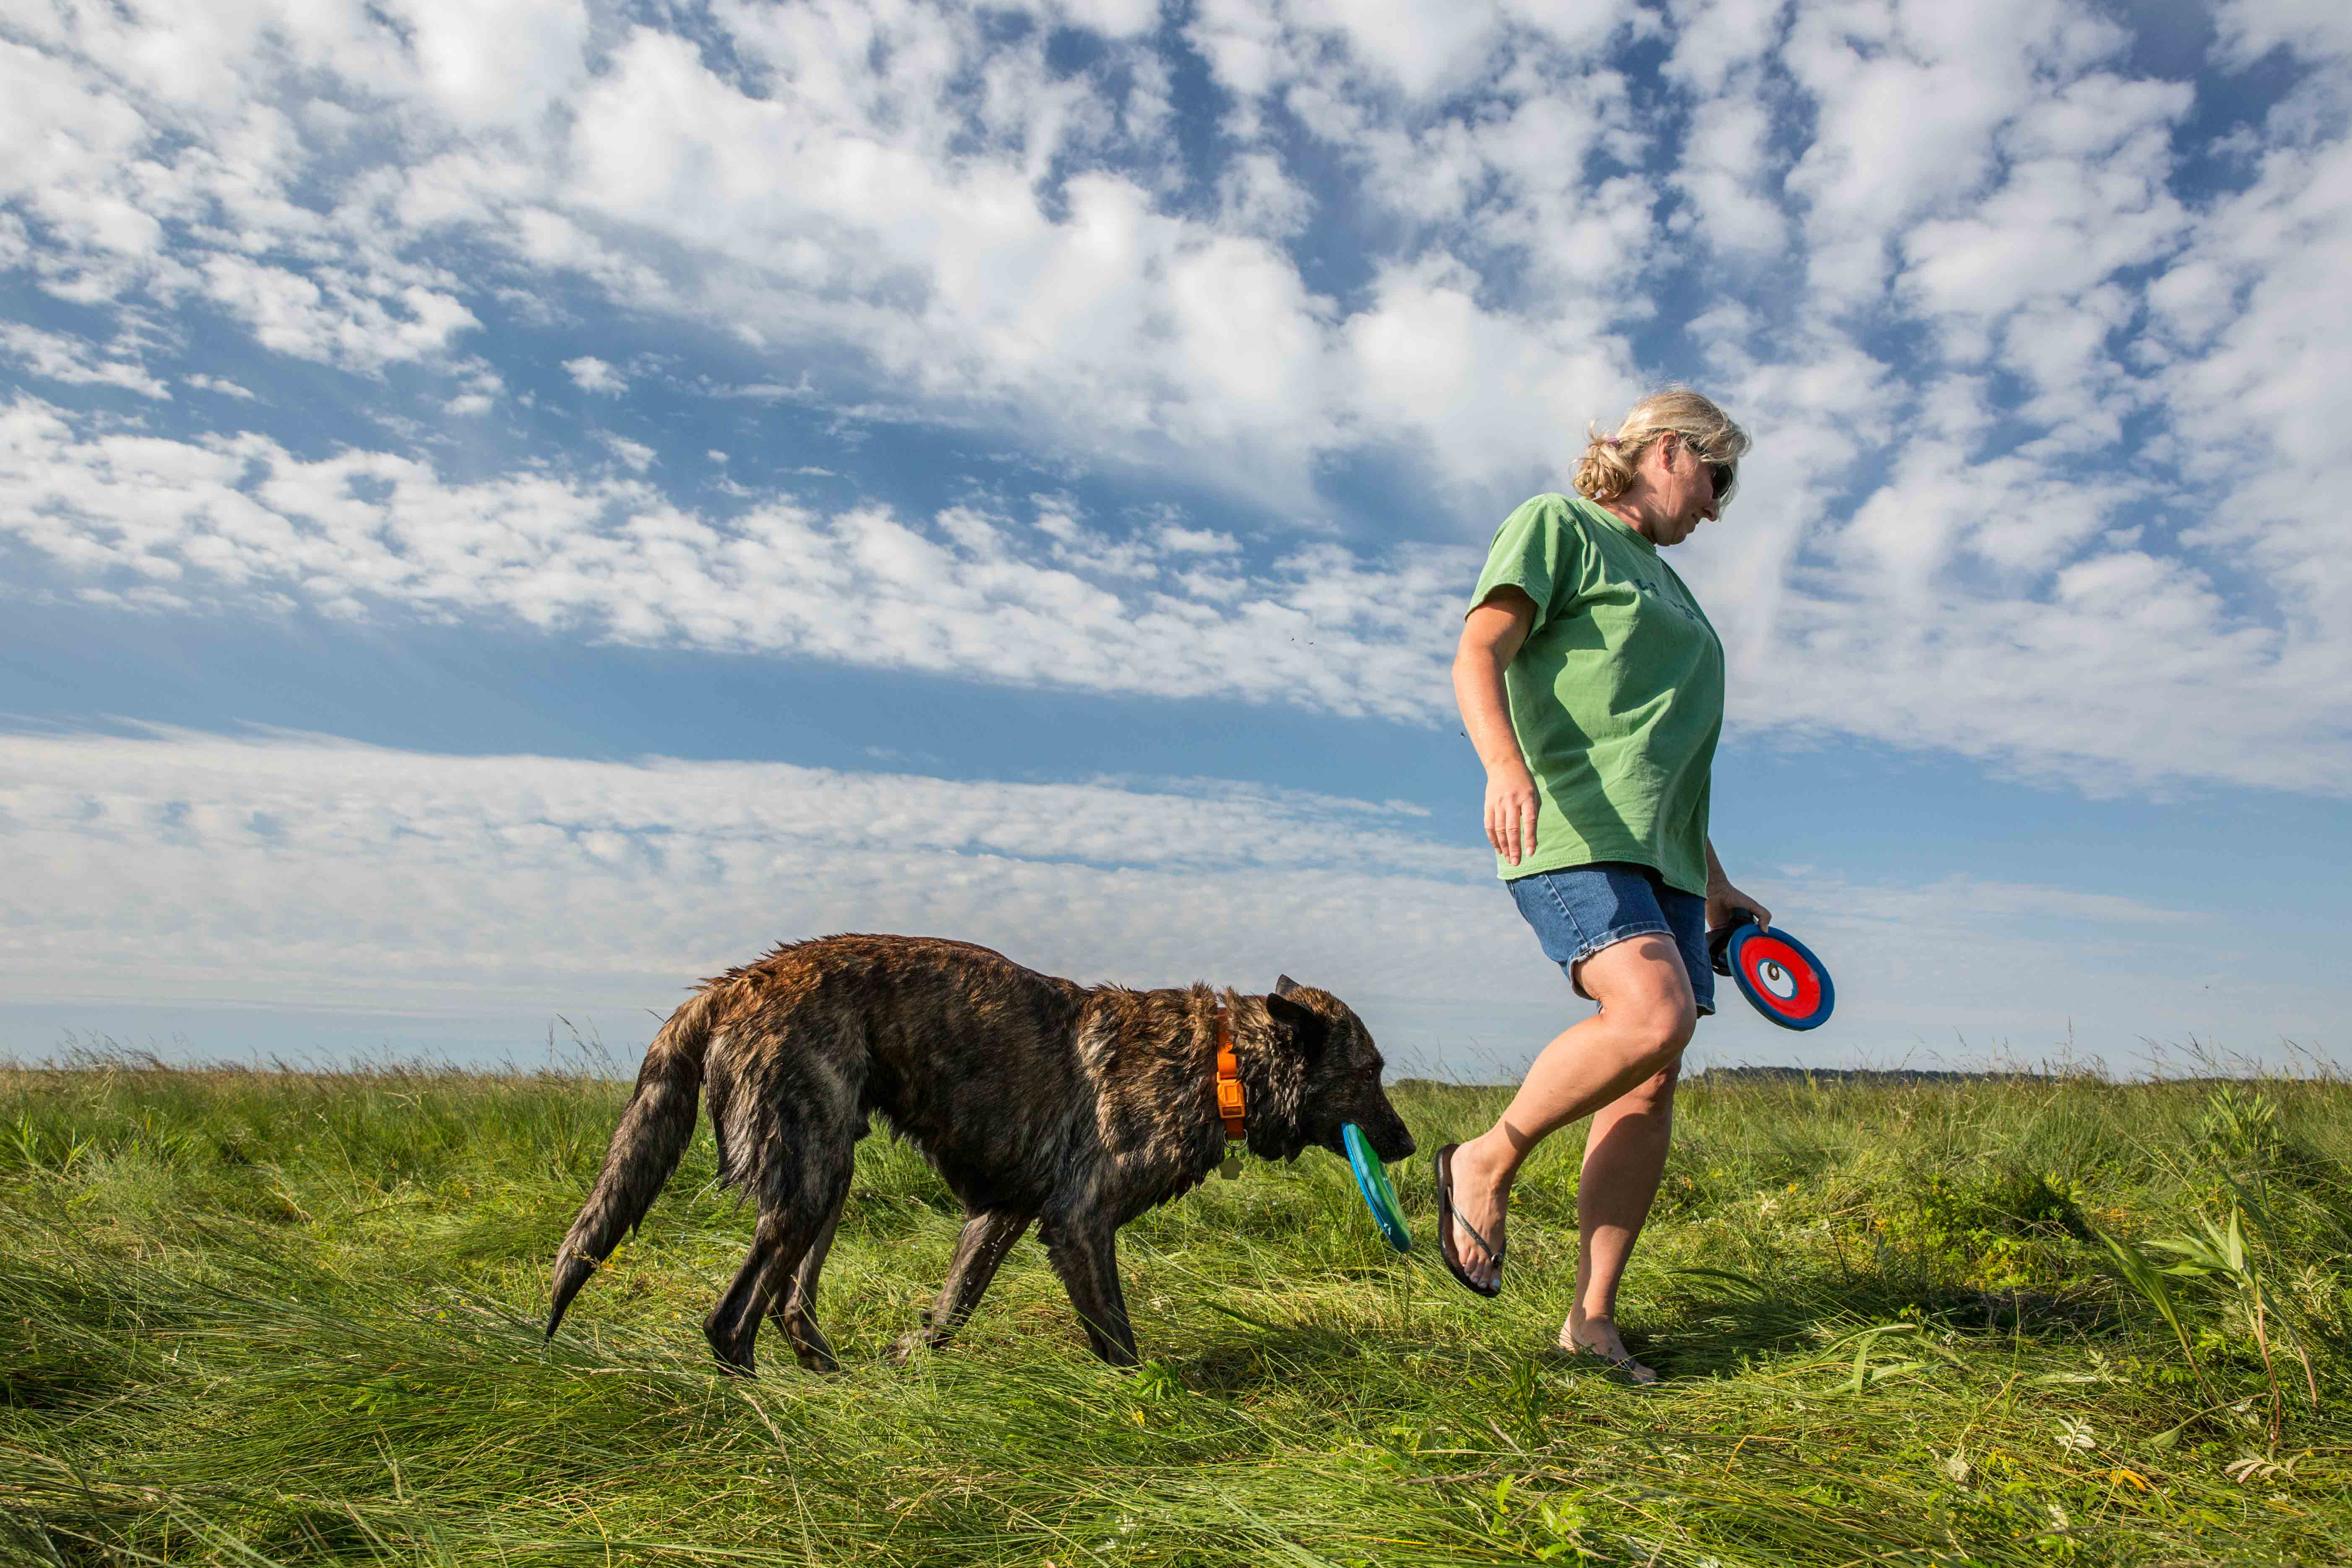 Heeding the call of the Great Marsh in Newbury, Chris Howe was up early on the summer solstice for a romp with her dog, Kane. The pair often heads to the wide open space here where dogs can run free. (Photo by Coco McCabe/GroundTruth)